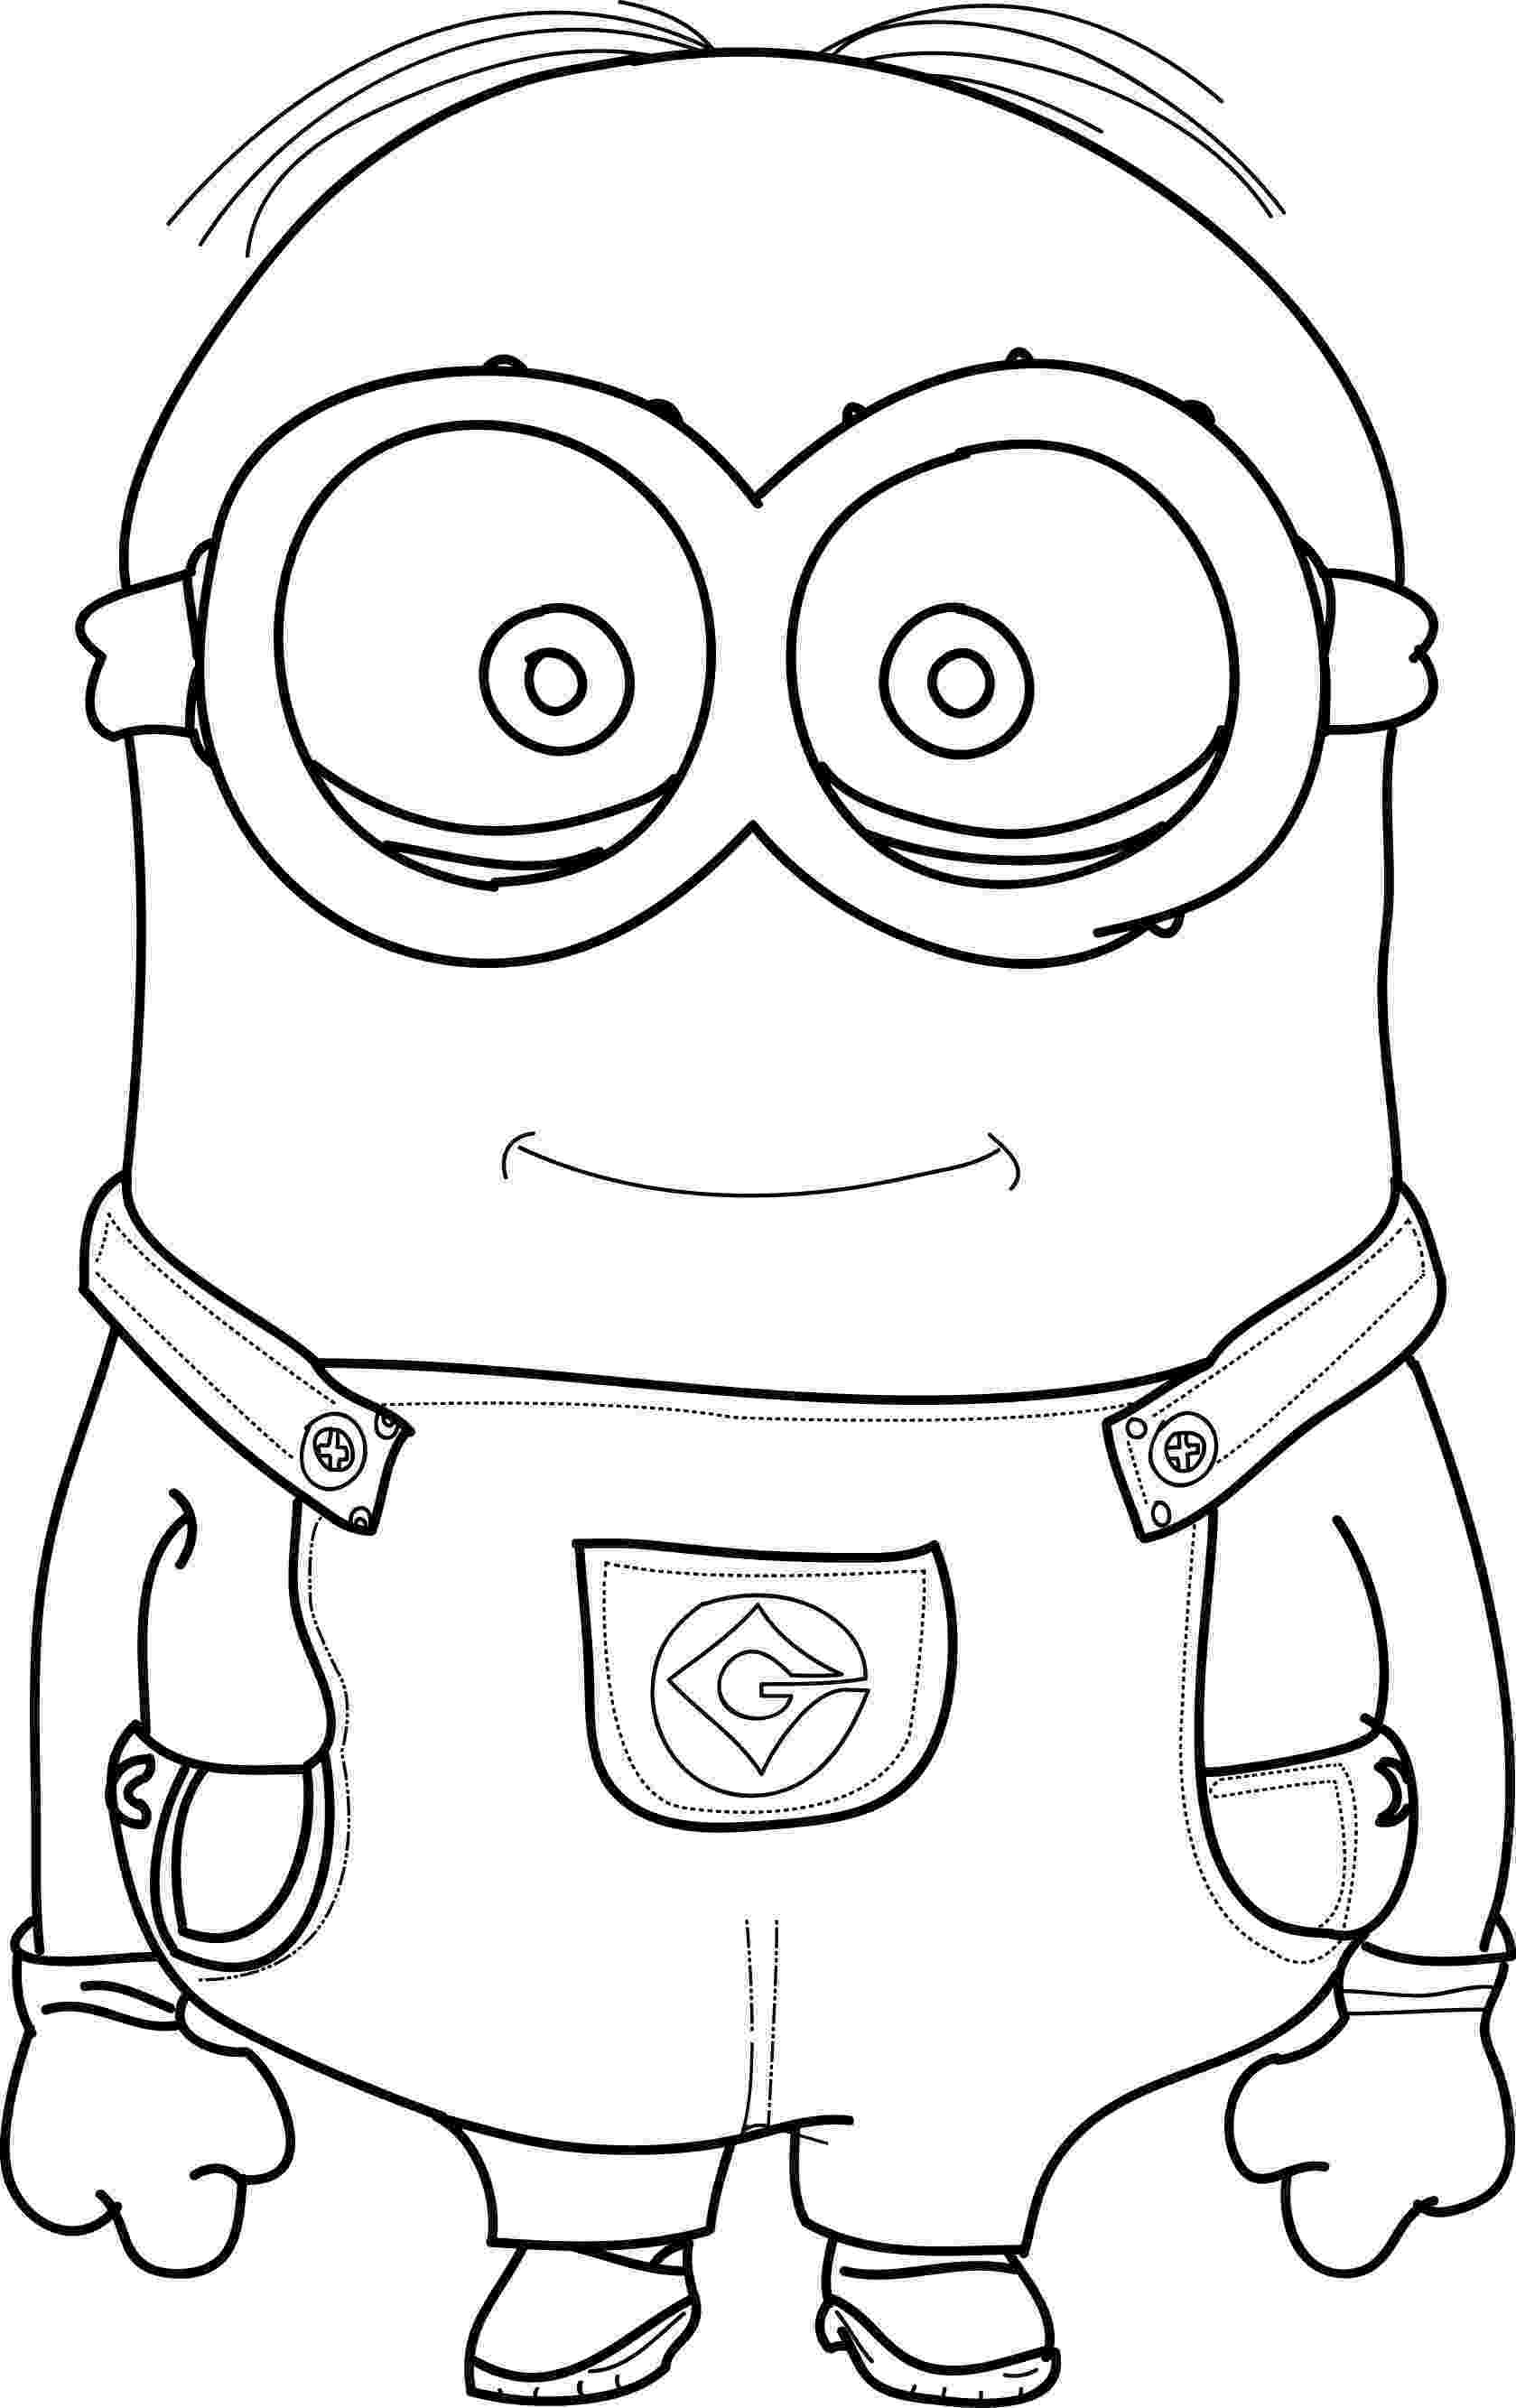 minion coloring pages online minion coloring pages best coloring pages for kids minion pages coloring online 1 1